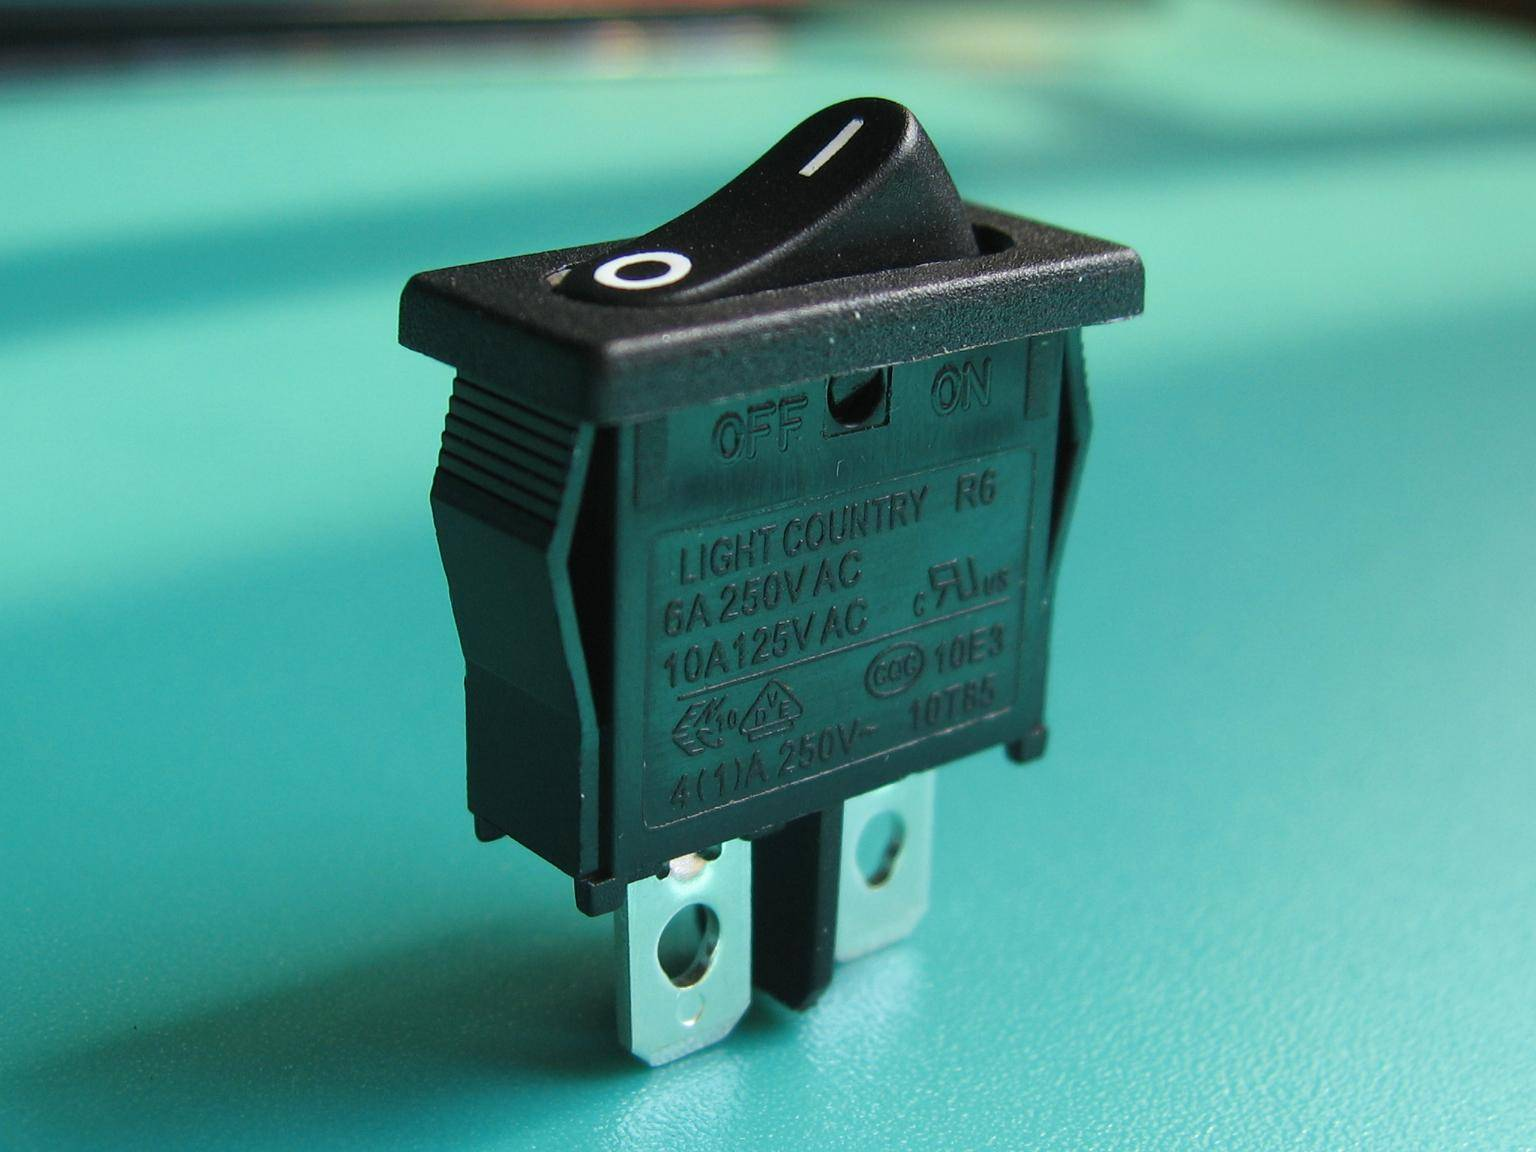 Light Country R4 Rocker Switch Wiring - Trusted Wiring Diagram •